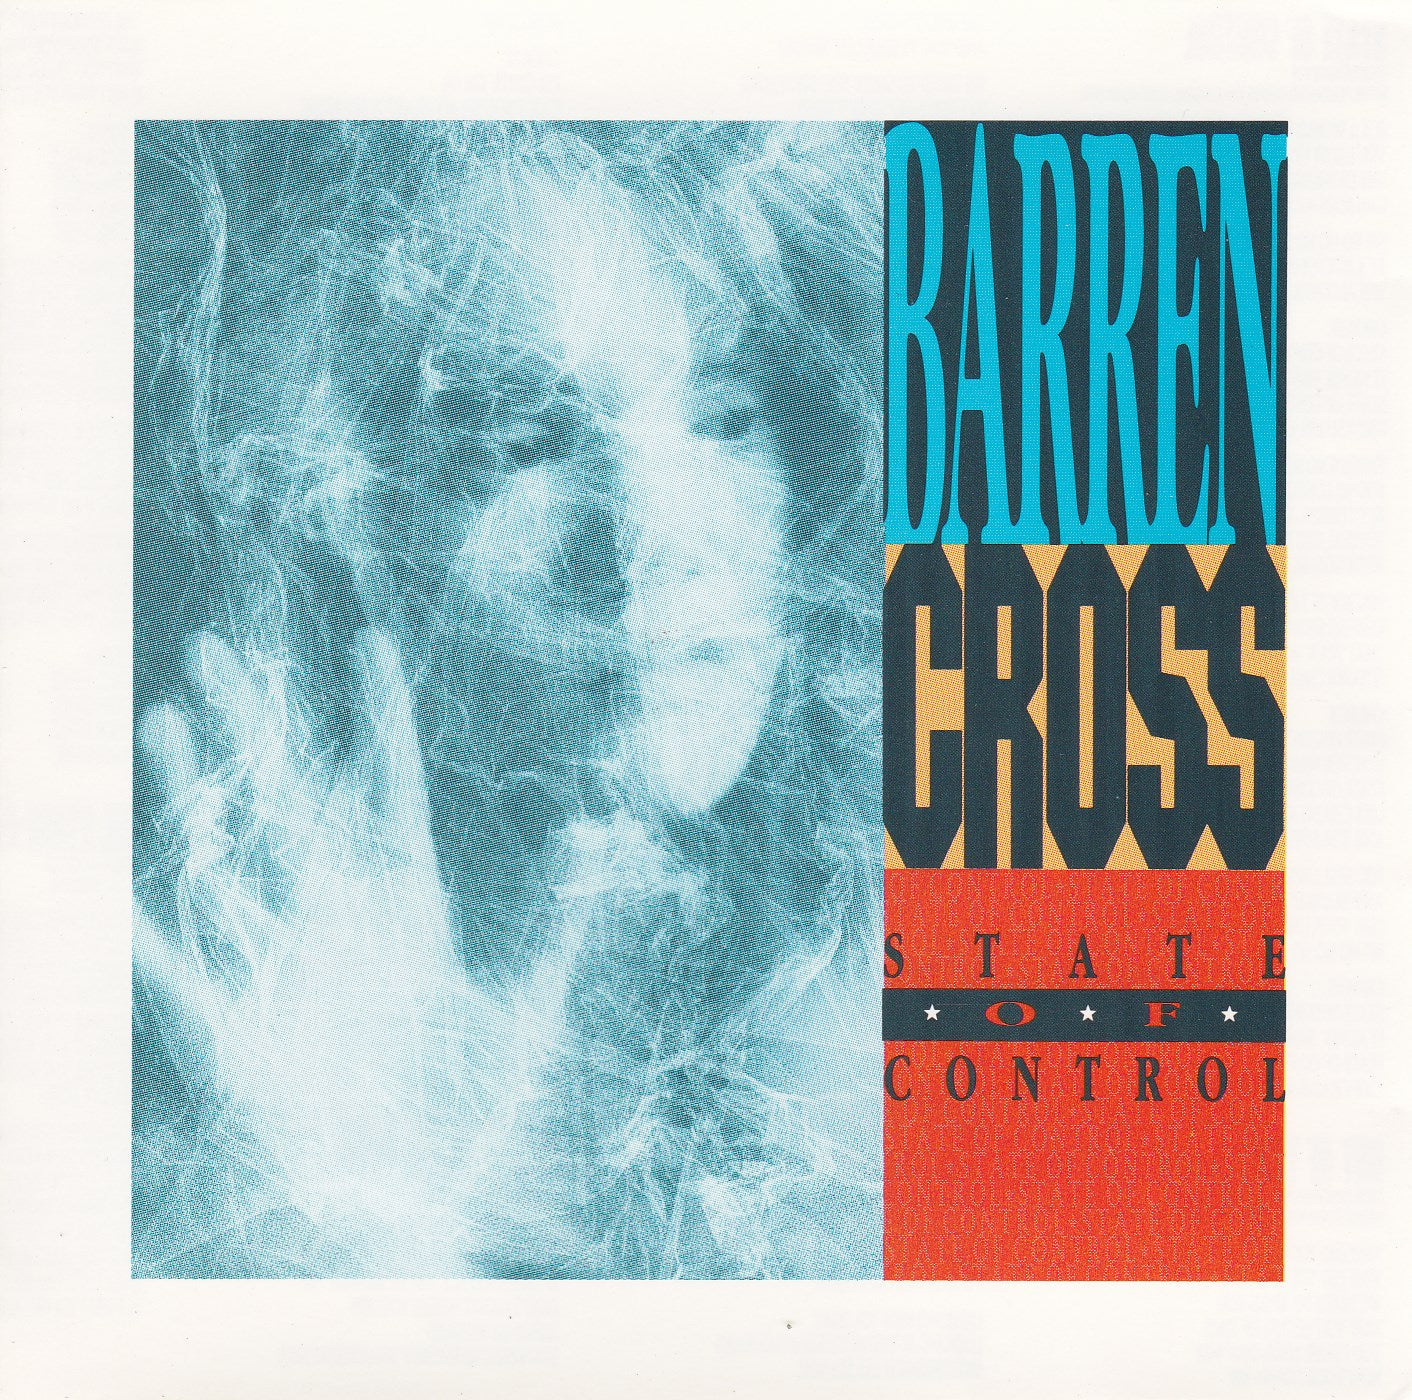 """BARREN CROSS - STATE OF CONTROL (*Used-CD, 1989, Enigma Records) Includes the song """"Escape in the Night"""""""""""